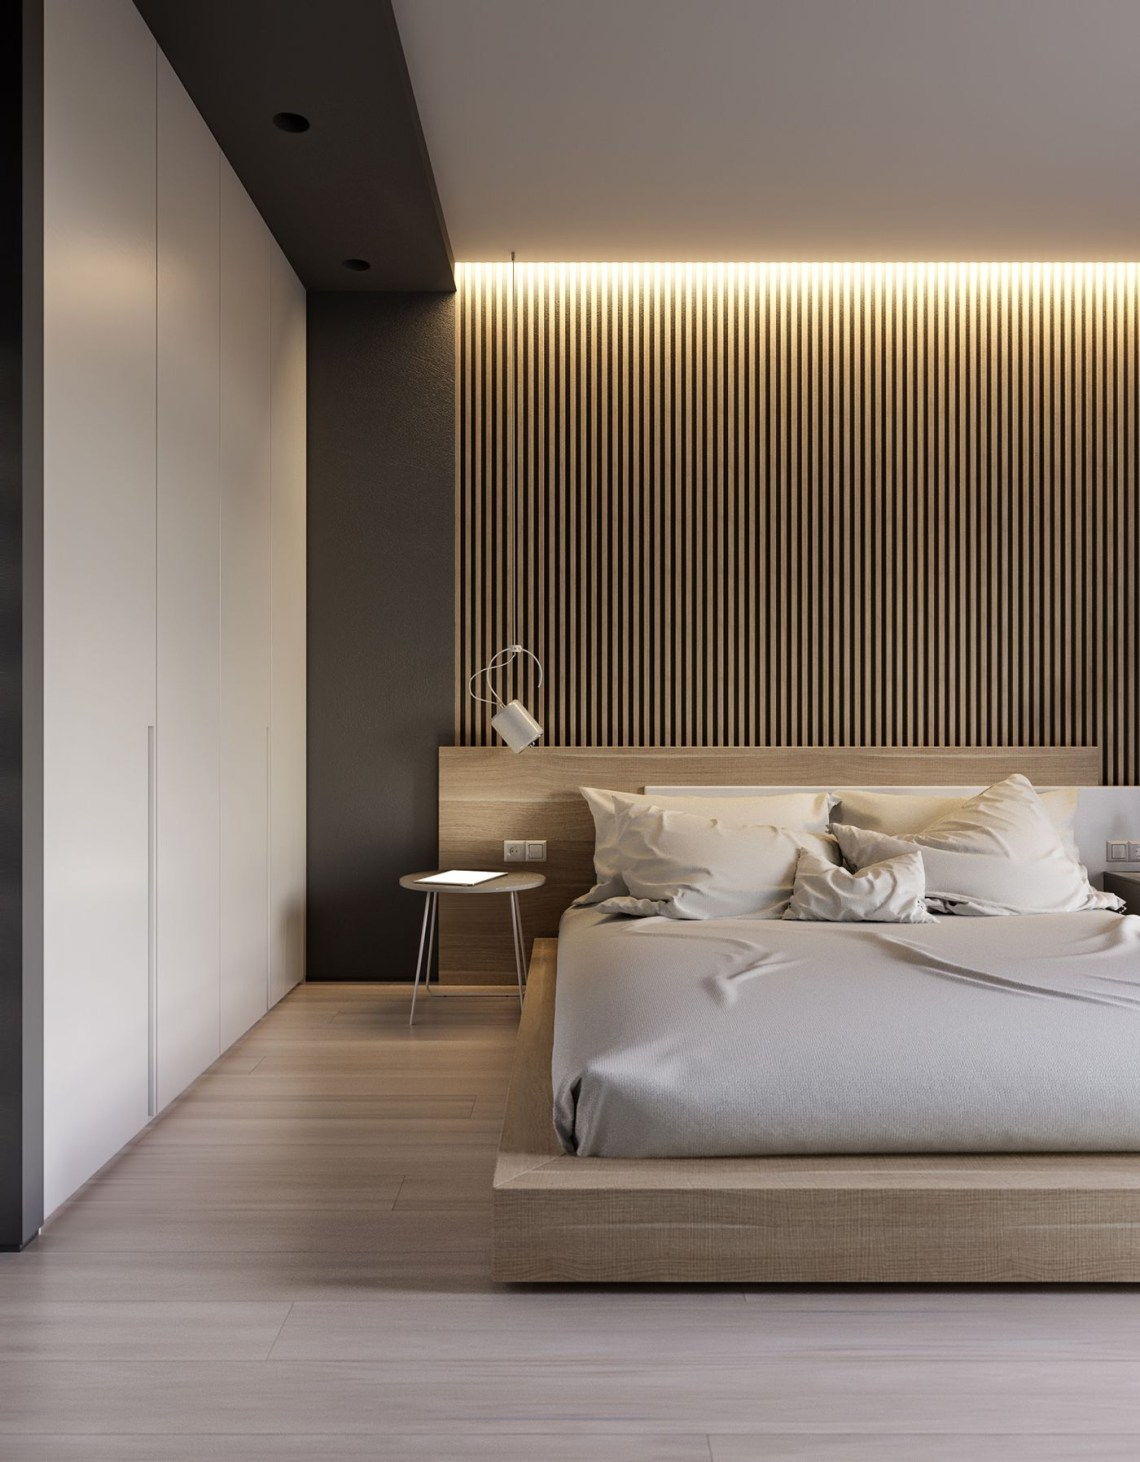 Pin Hangang On Badroom Pinterest Bedrooms And